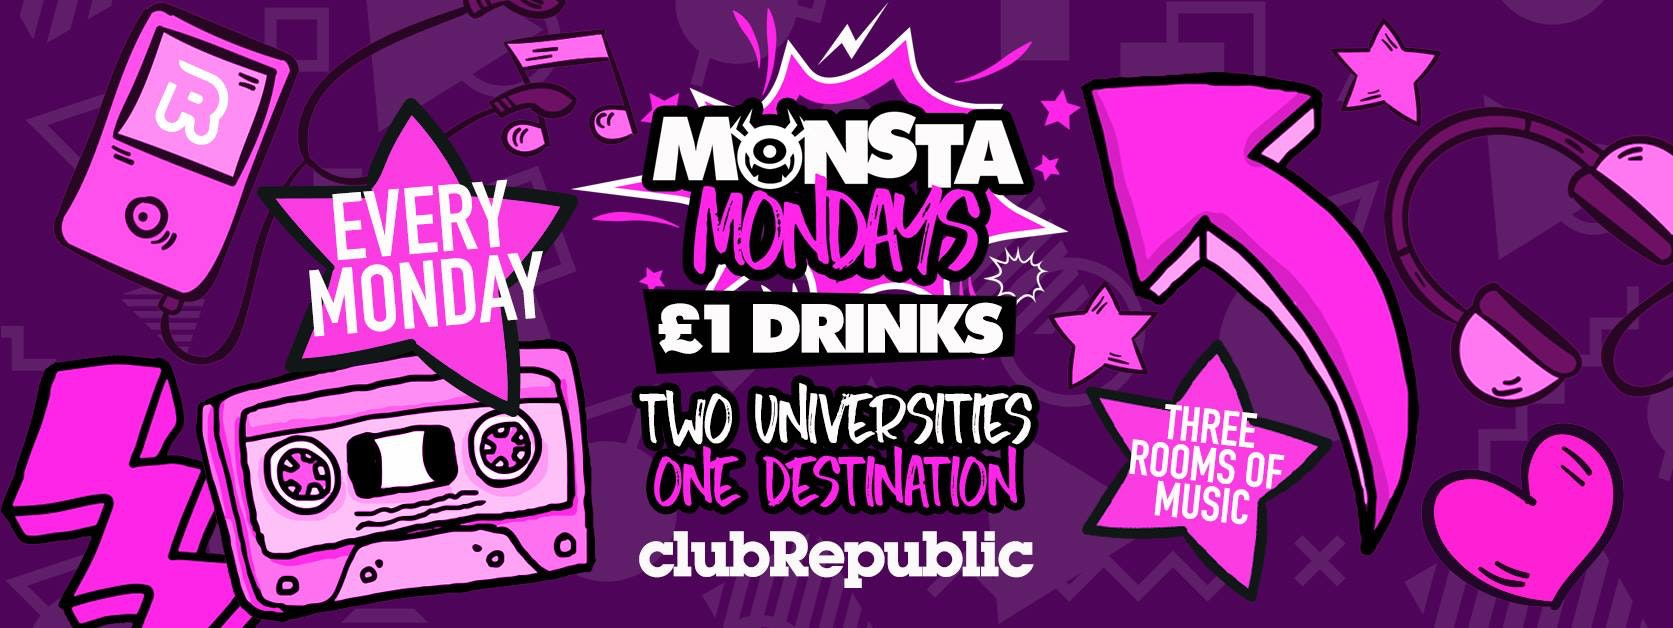 ★ Monsta Mondays ★ £1 Drinks ★ Club Republic